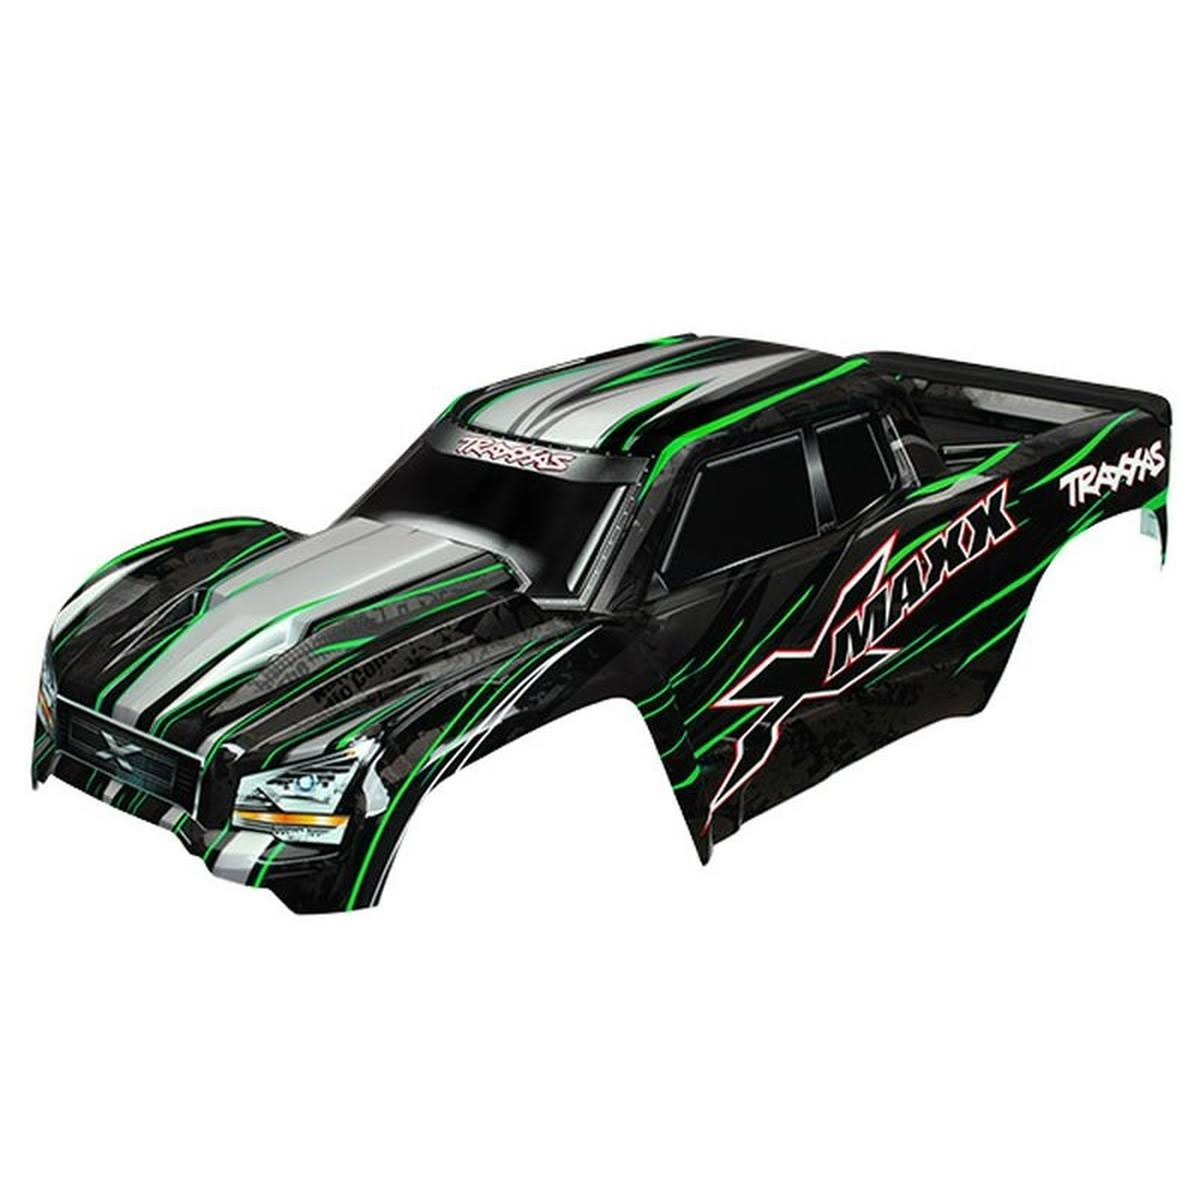 Traxxas X-Maxx Body (Green - Painted w/ Decals)